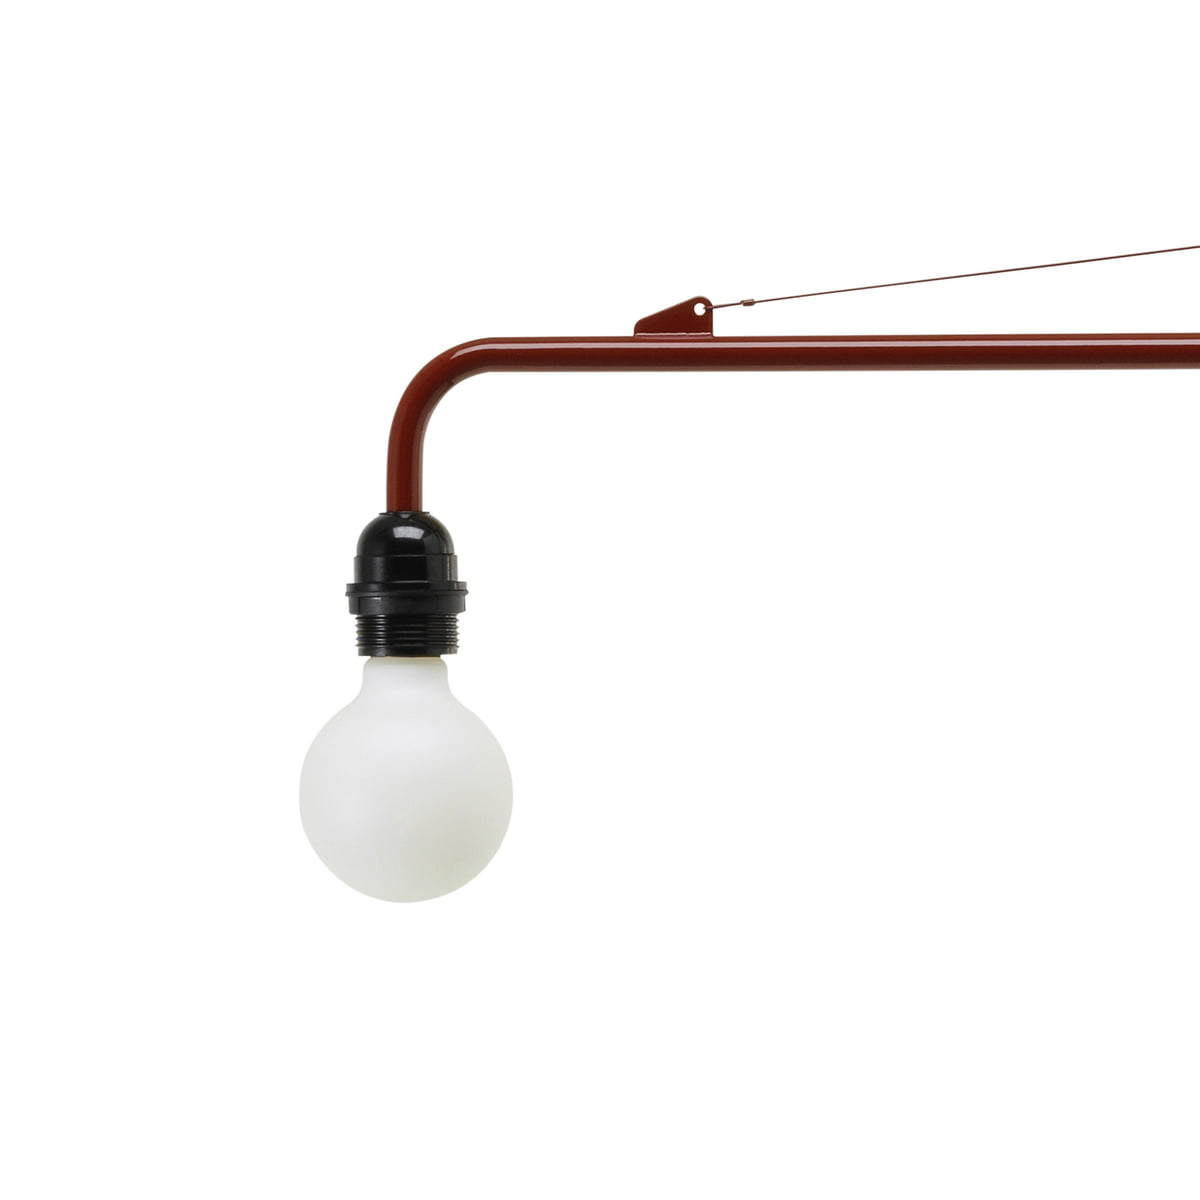 Wall Light Potence By Vitra In The